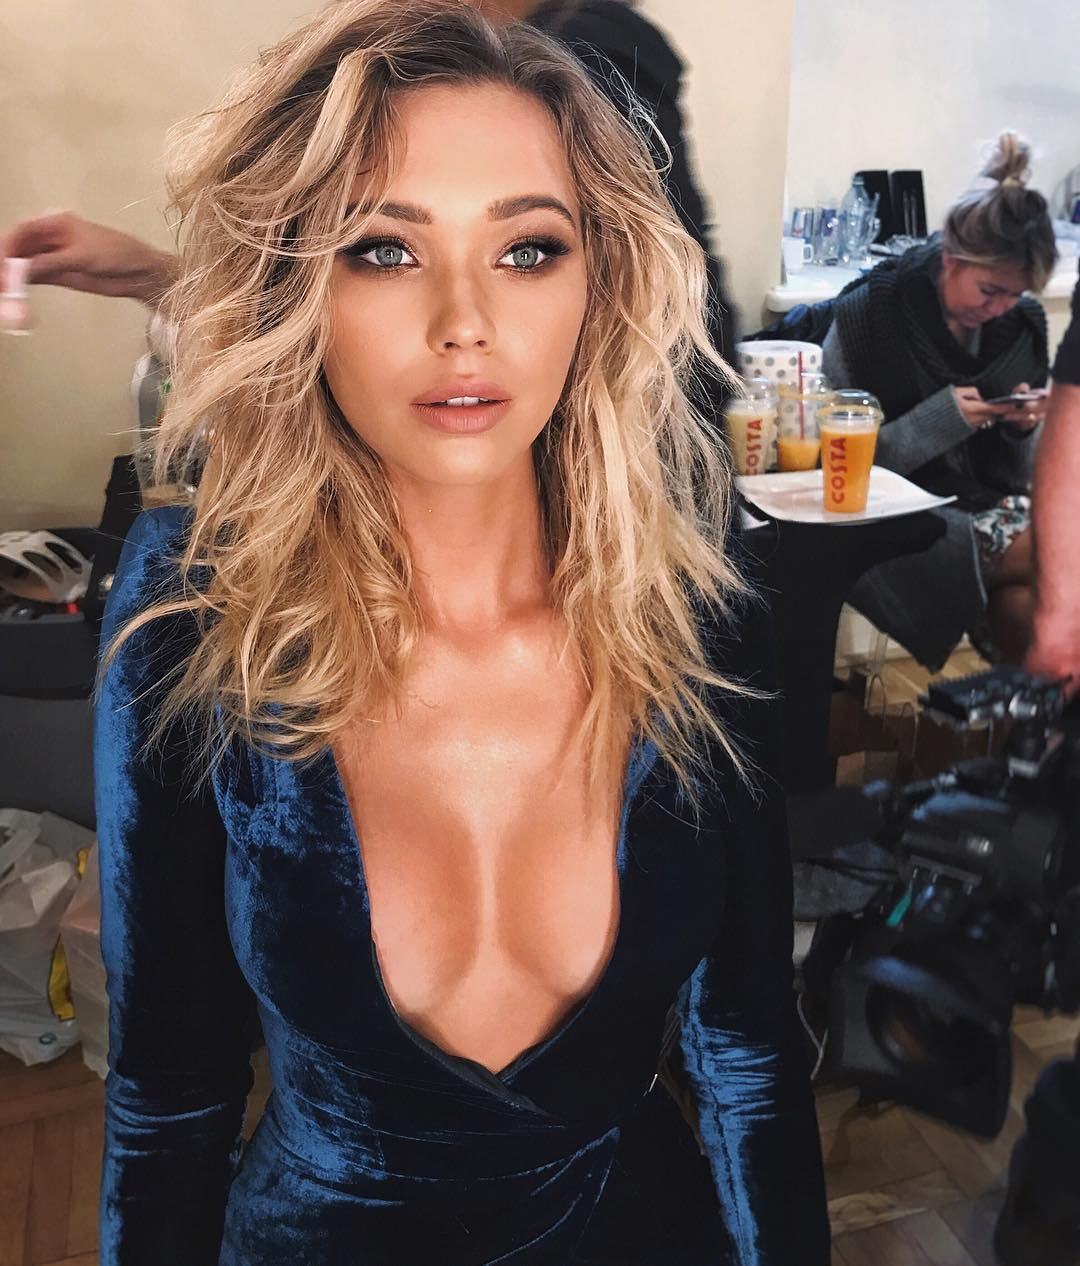 Image result for sandra kubicka